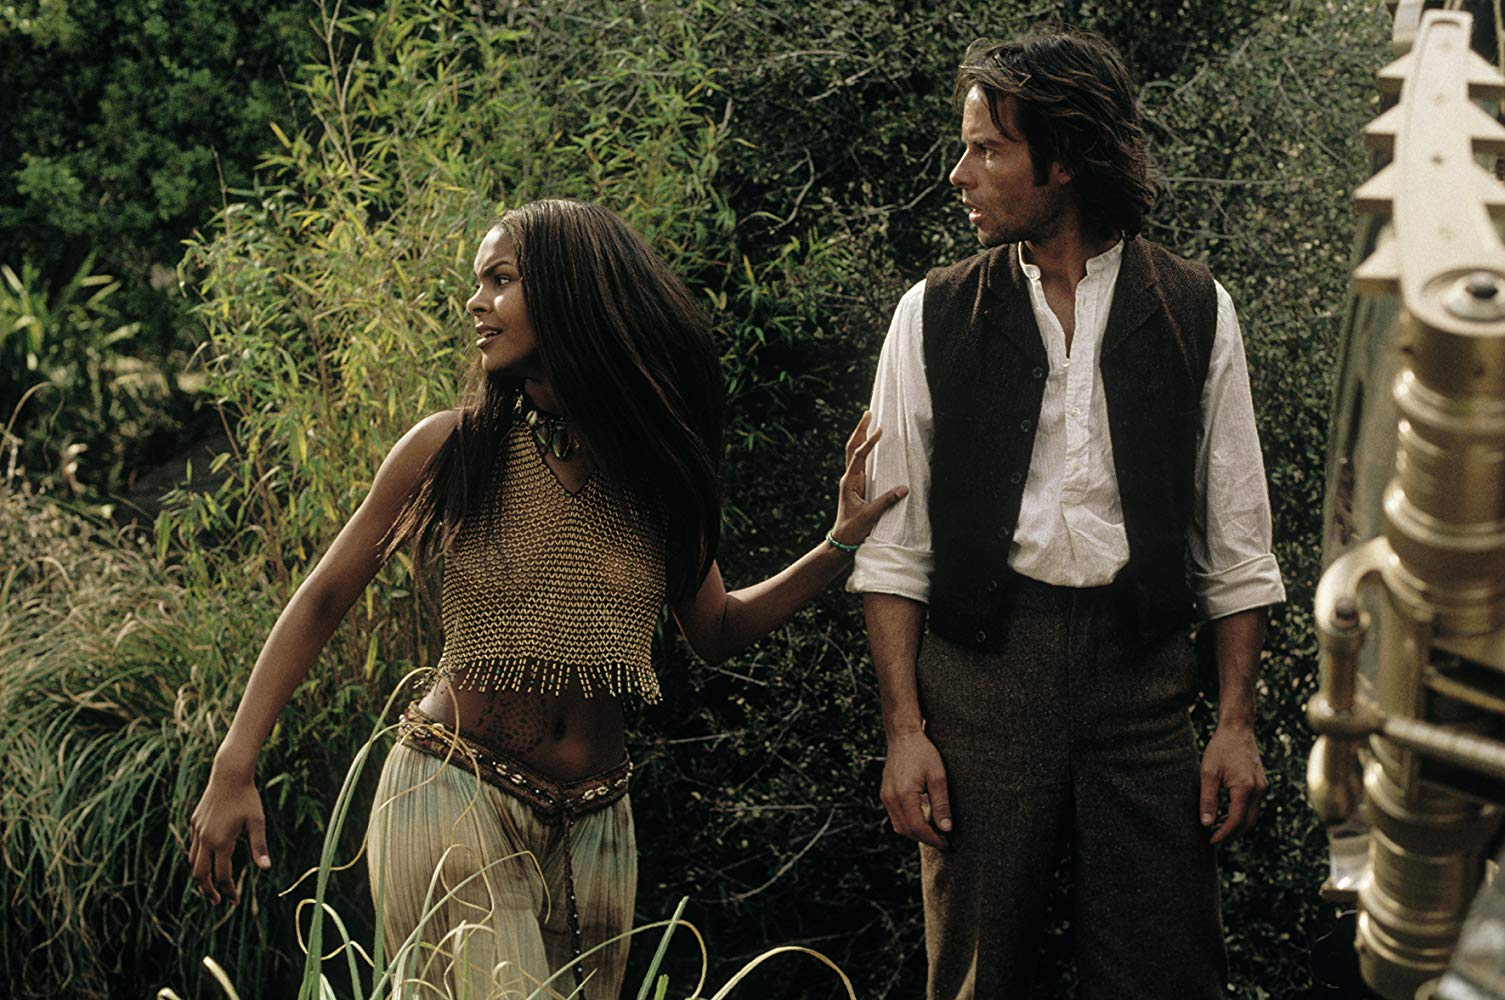 Dr Alexander Hartdegen (Guy Pearce) with Weena (Samantha Mumba) in The Time Machine (2002)